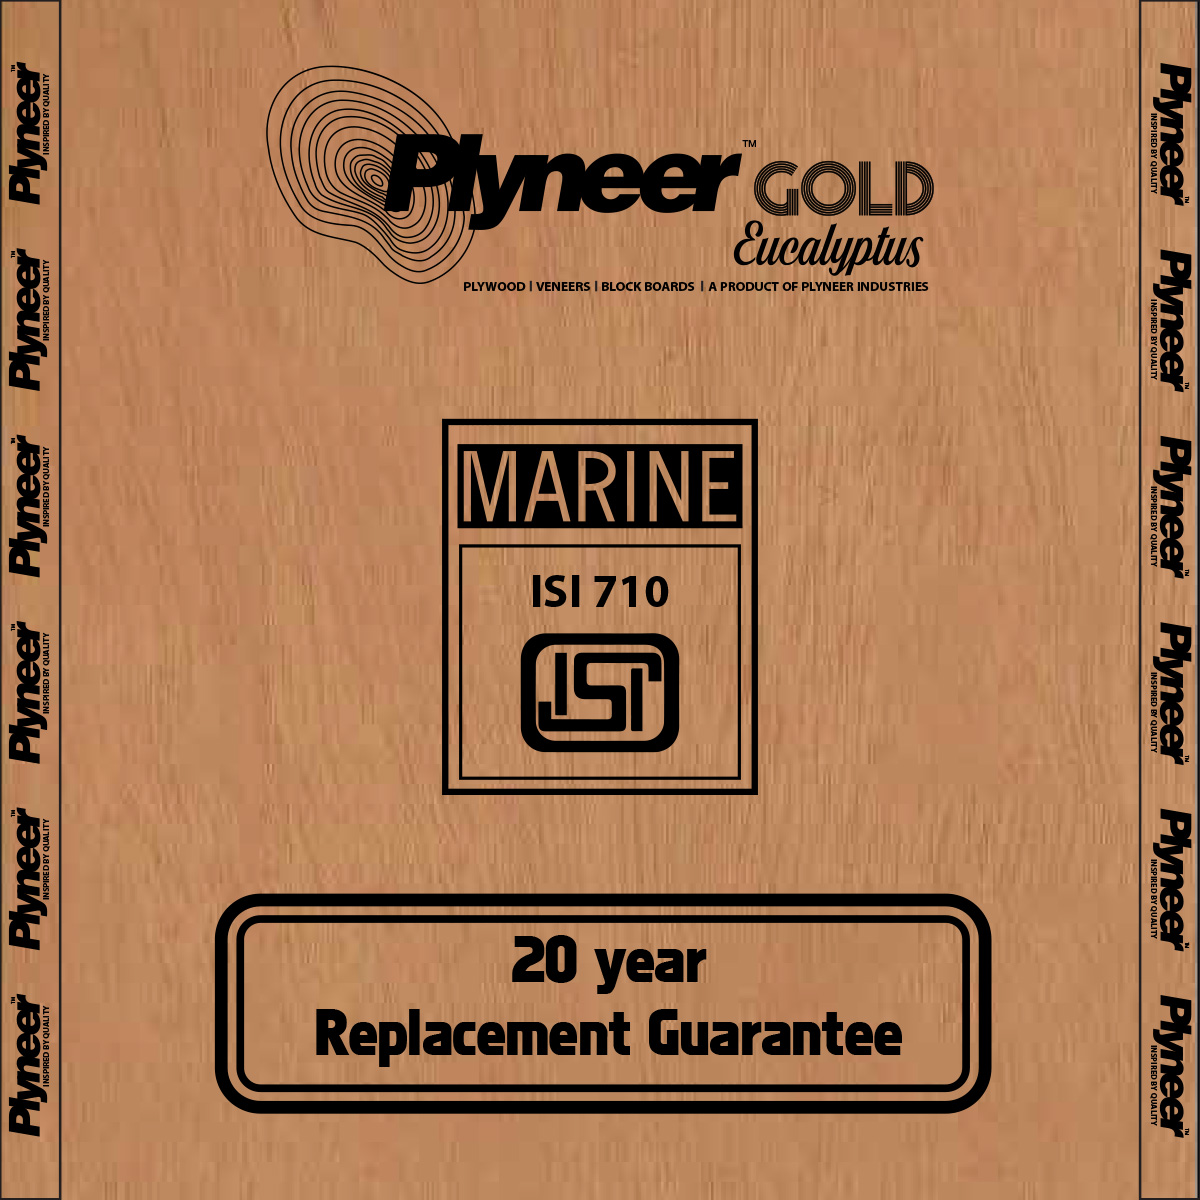 Plyneer Gold B.W.P Eucalyptus Waterproof Plywood - 20 Years Replacement Guarantee*